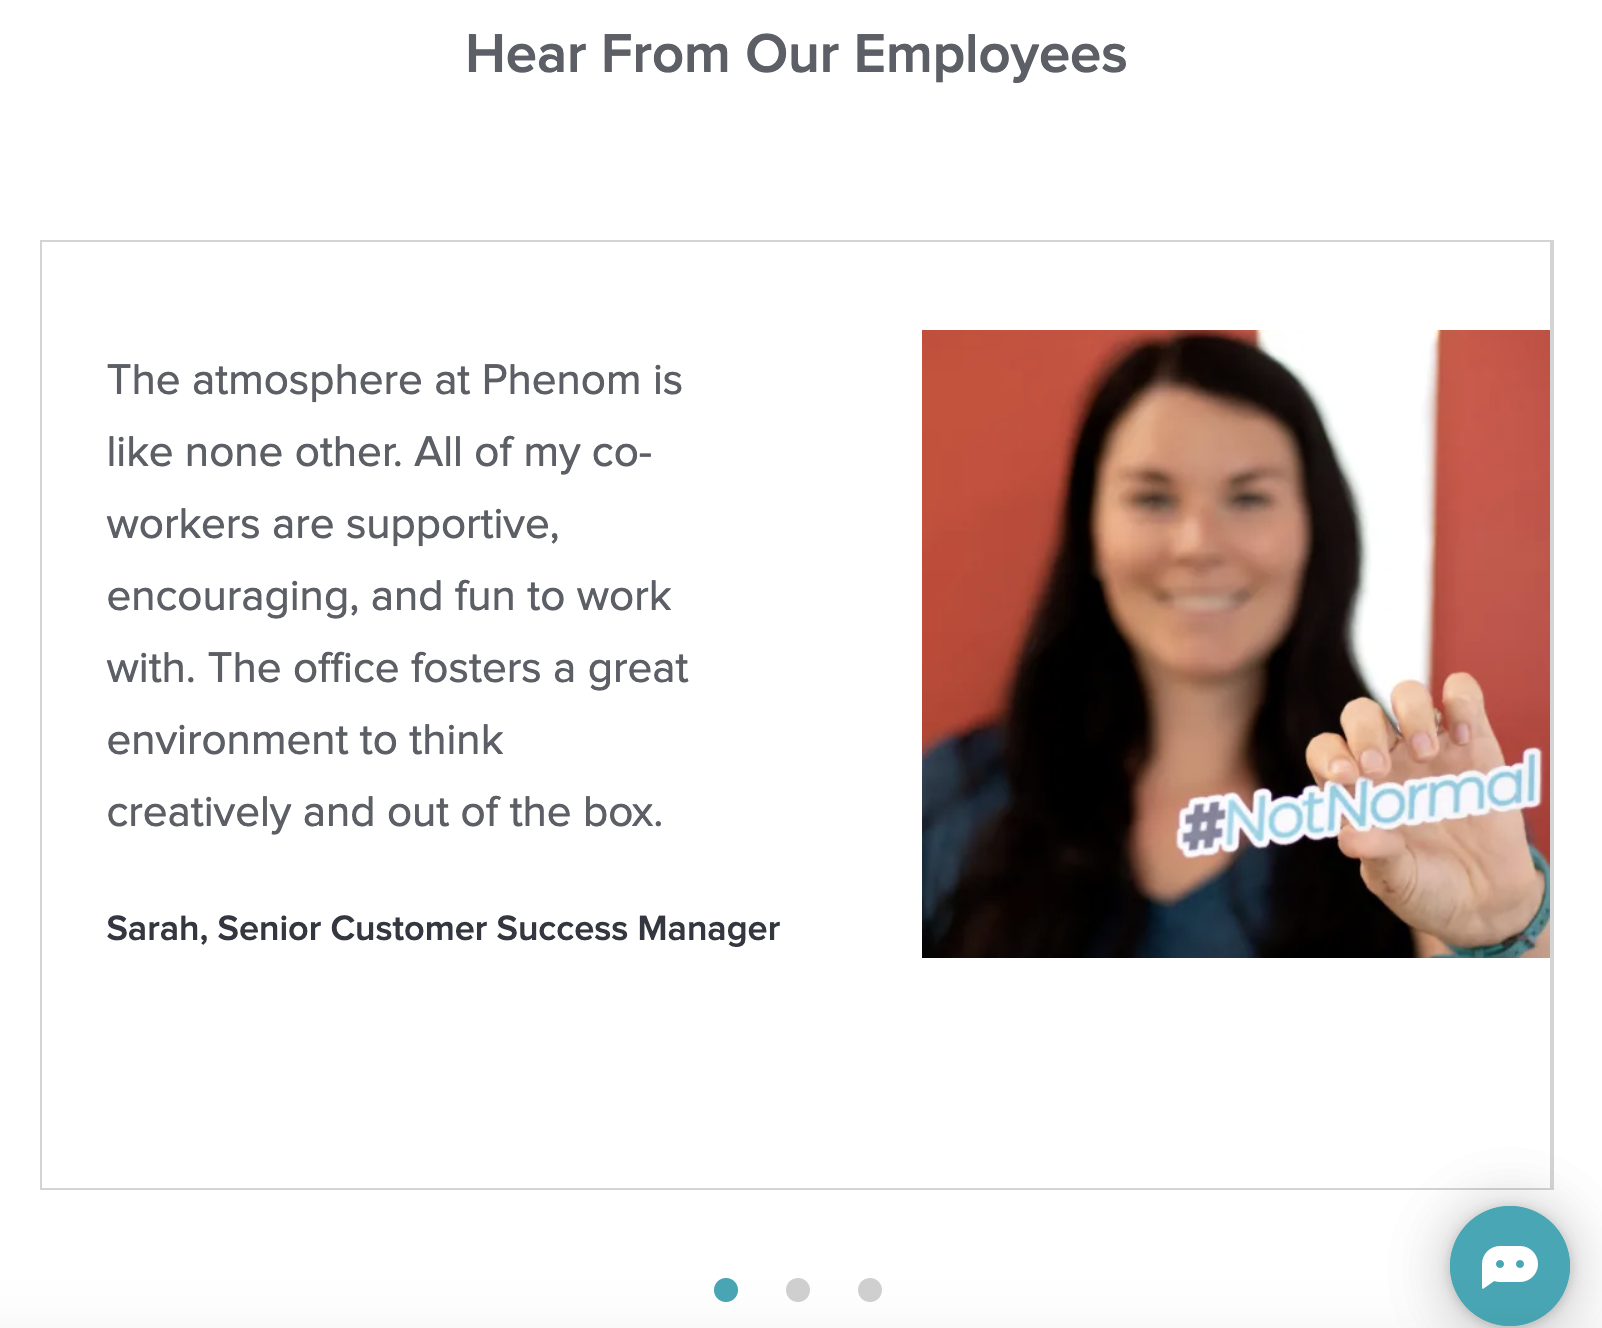 short employee testimonial example for mobile candidate experience